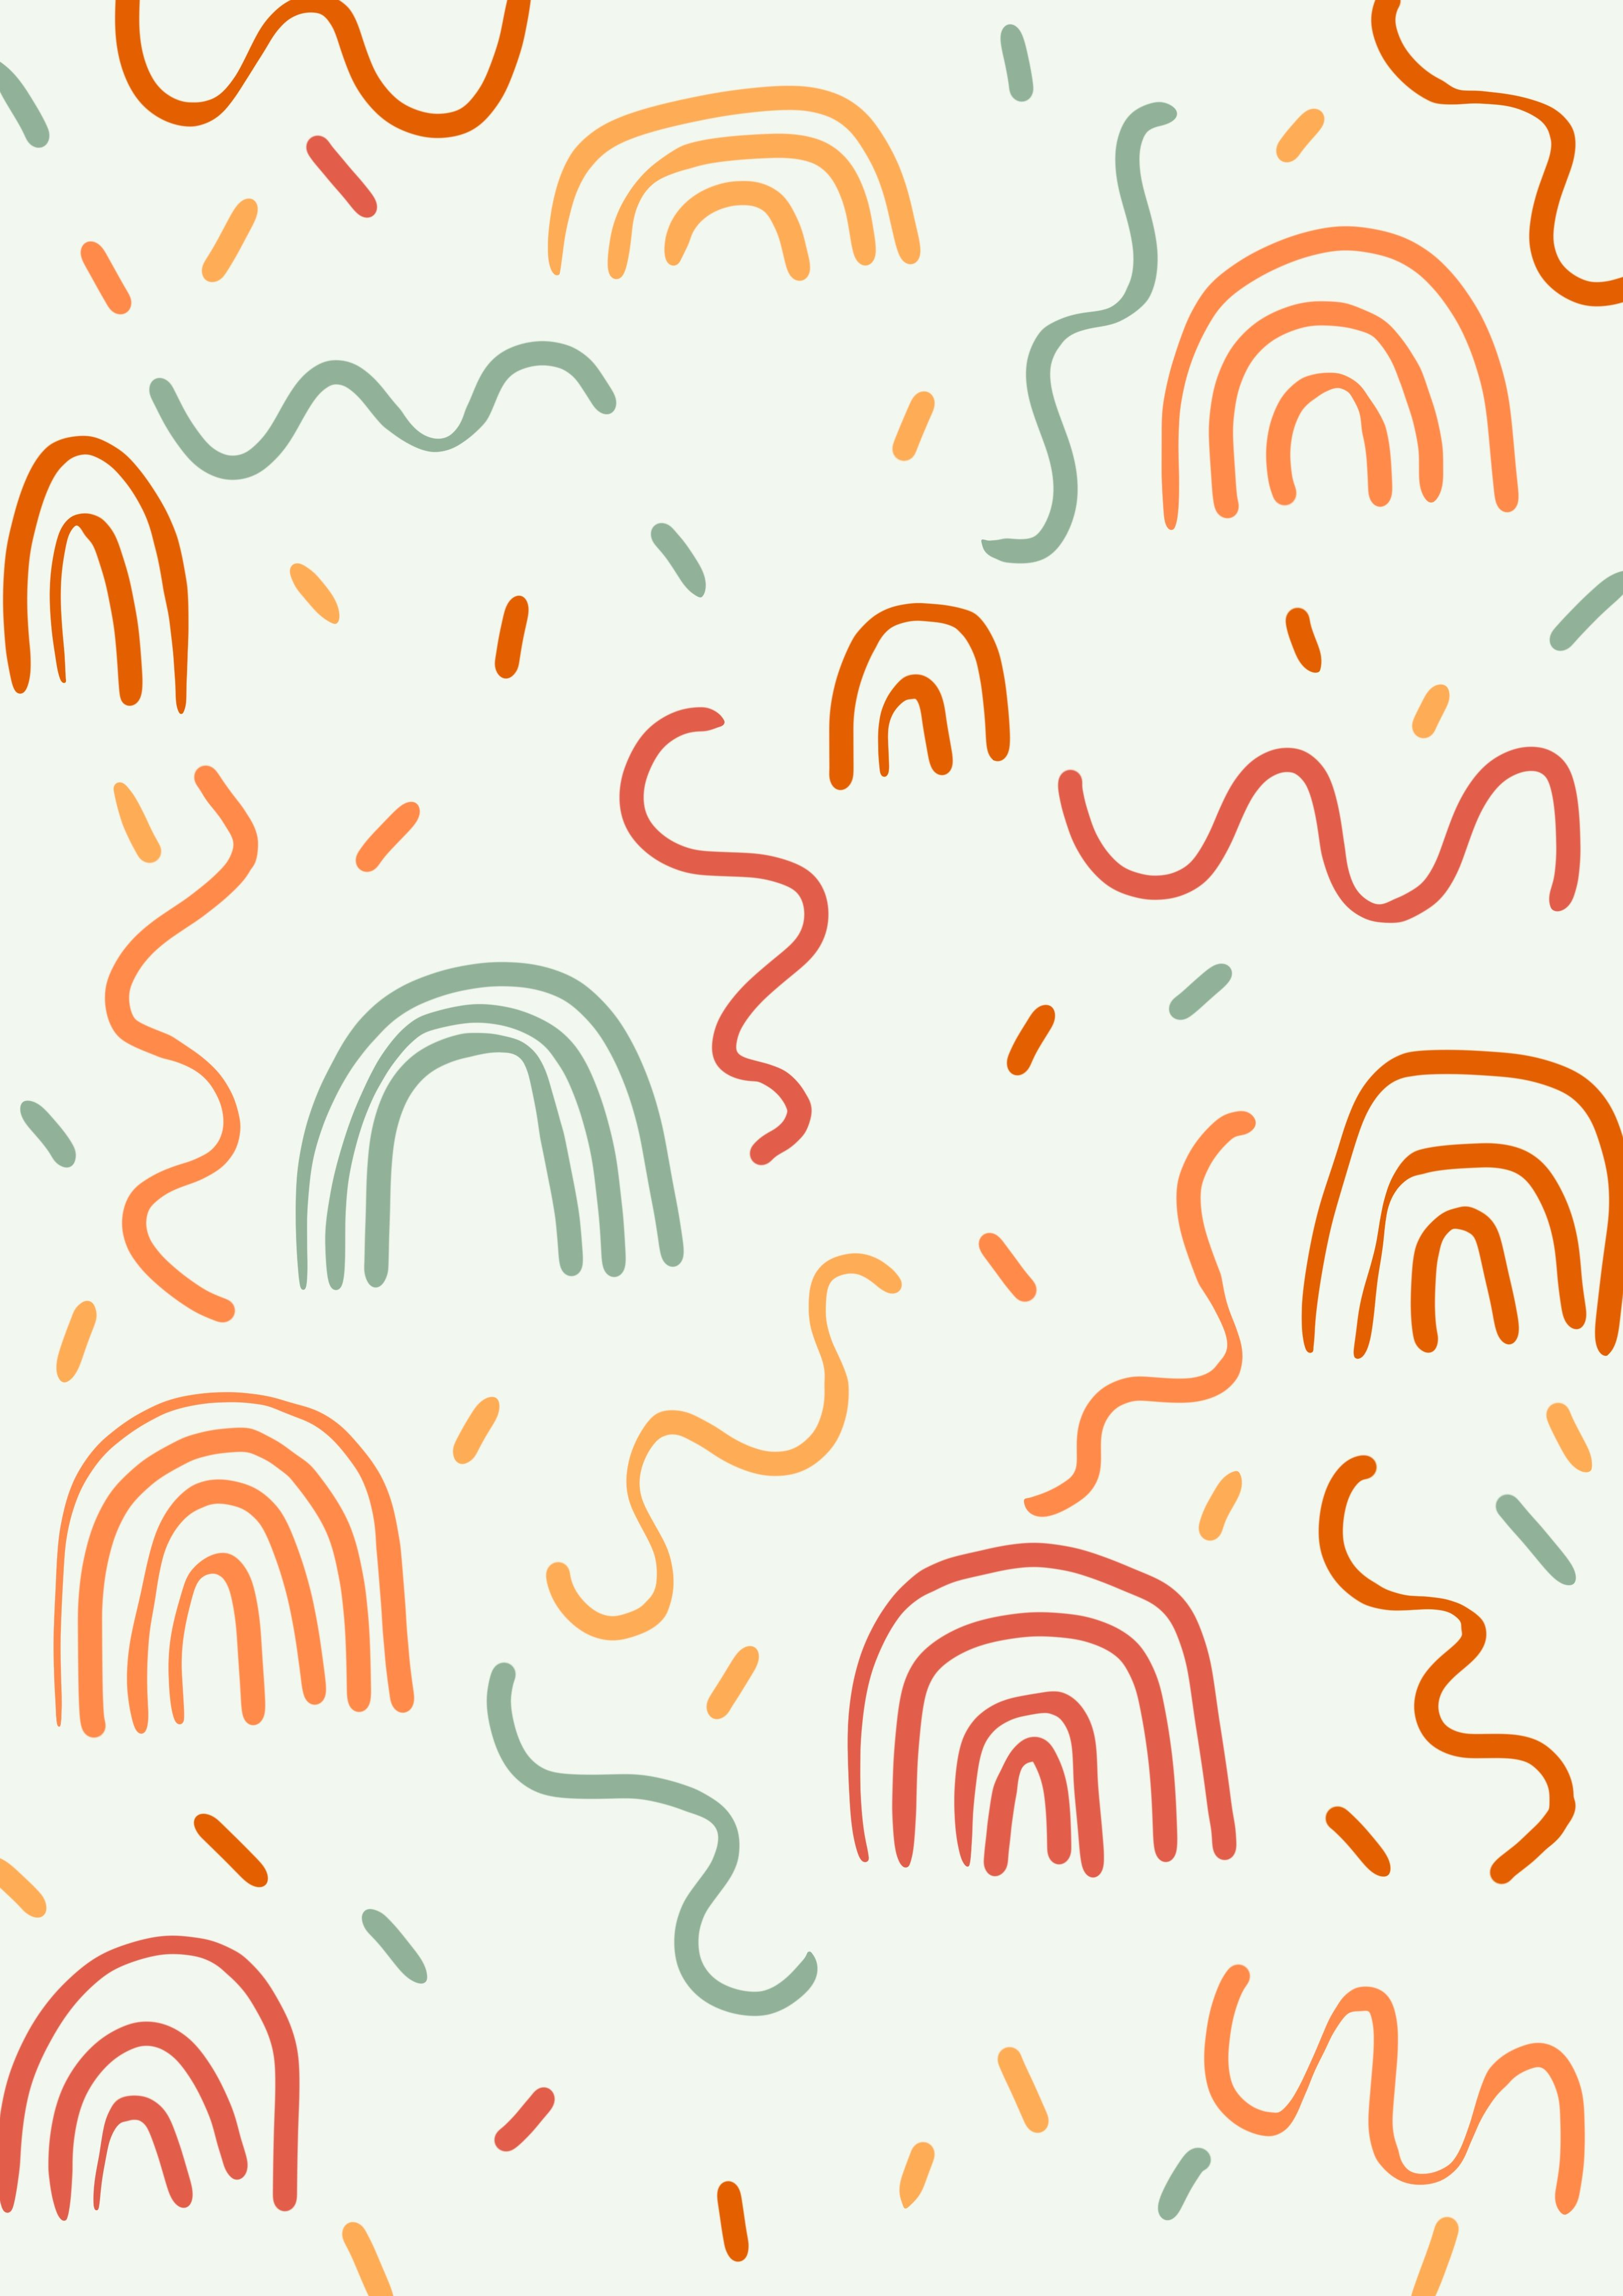 Charlotte Dreams Art Illustrations Abstract Colorful Pattern Drawing Iphone Background Wallpaper Cute Patterns Wallpaper Pattern Wallpaper